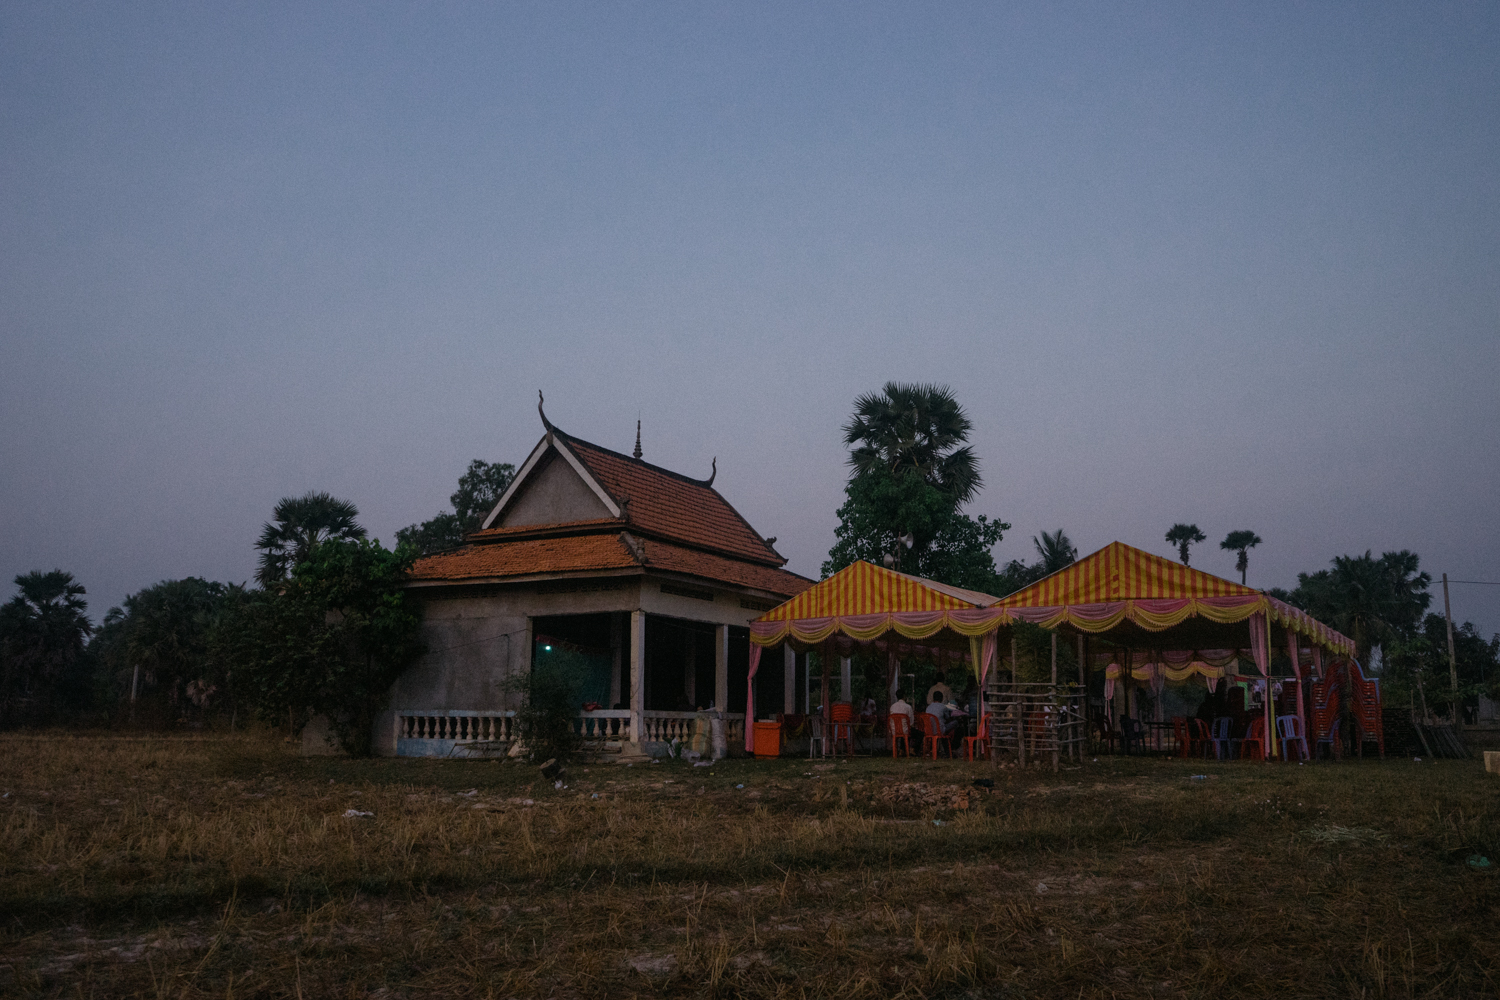 Tents are set up at dawn for a ceremony held for victims of forced marriages by the Khmer Rouge. Several couples have decided to have a formal wedding ceremony almost four decades after their forced marriage, a crime which is today being tried as a crime against humanity by a war crimes tribunal.